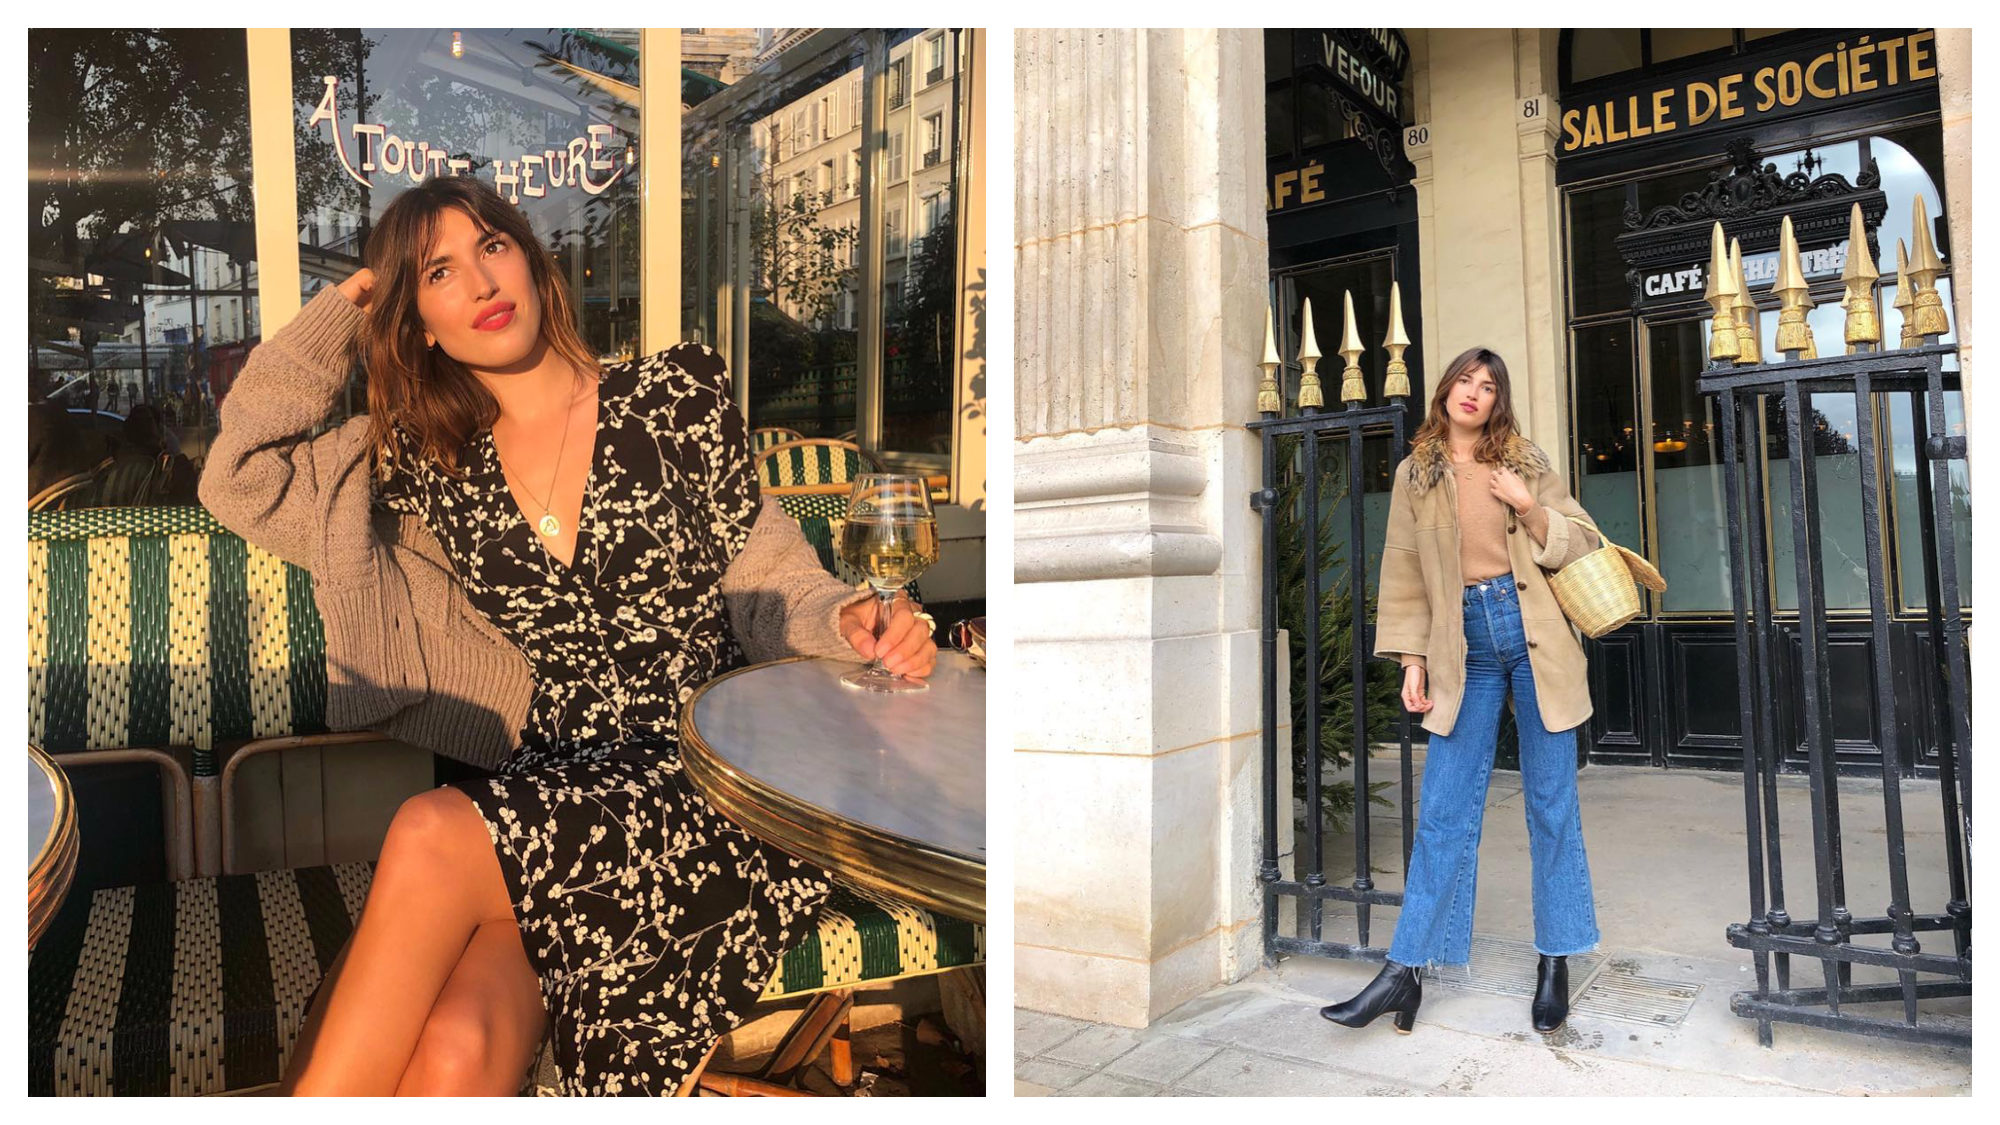 French Instagram fashion influencer Jeanne Damas, sitting at a Parisian café with a glass of wine in the sun (left). Jeanne Damas at the Jardin du Palais Royal in Paris, wearing flared frayed jeans and a Jane Birkin style basket as a handbag (right).